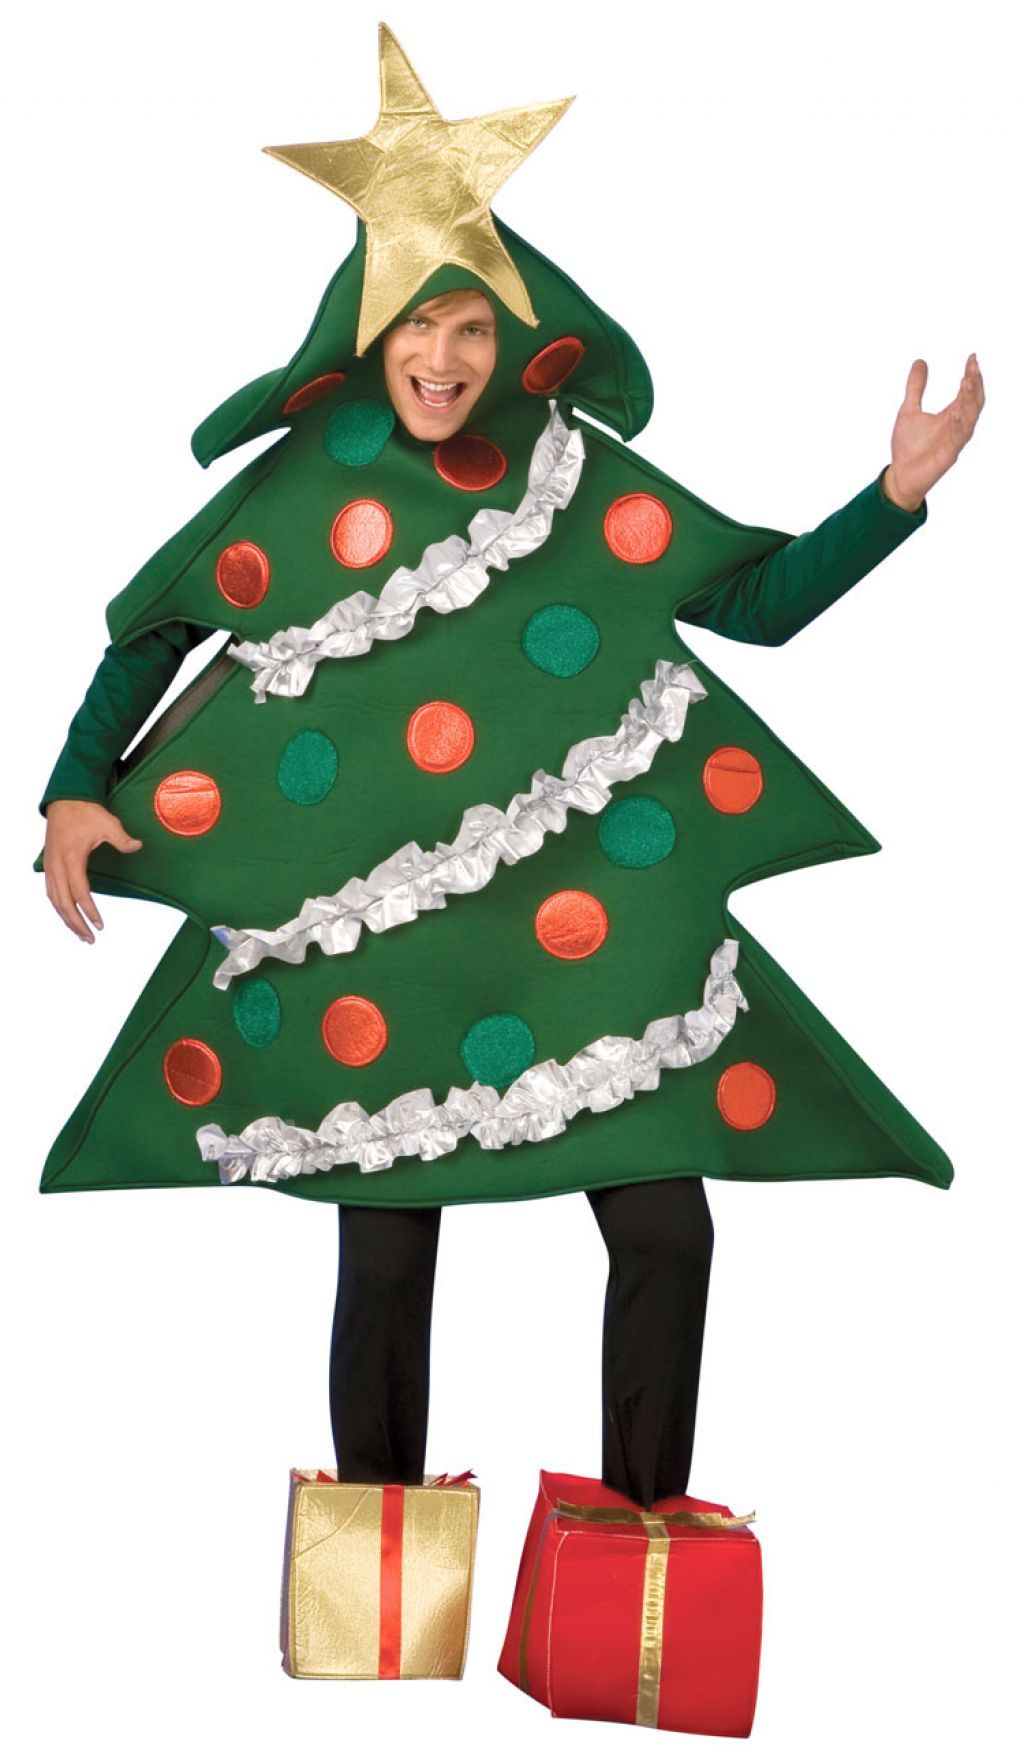 Christmas Tree Costume Ideas Christmas Tree Costume Ideas Tree Costume Christmas Tree Costume Funny Christmas Costumes